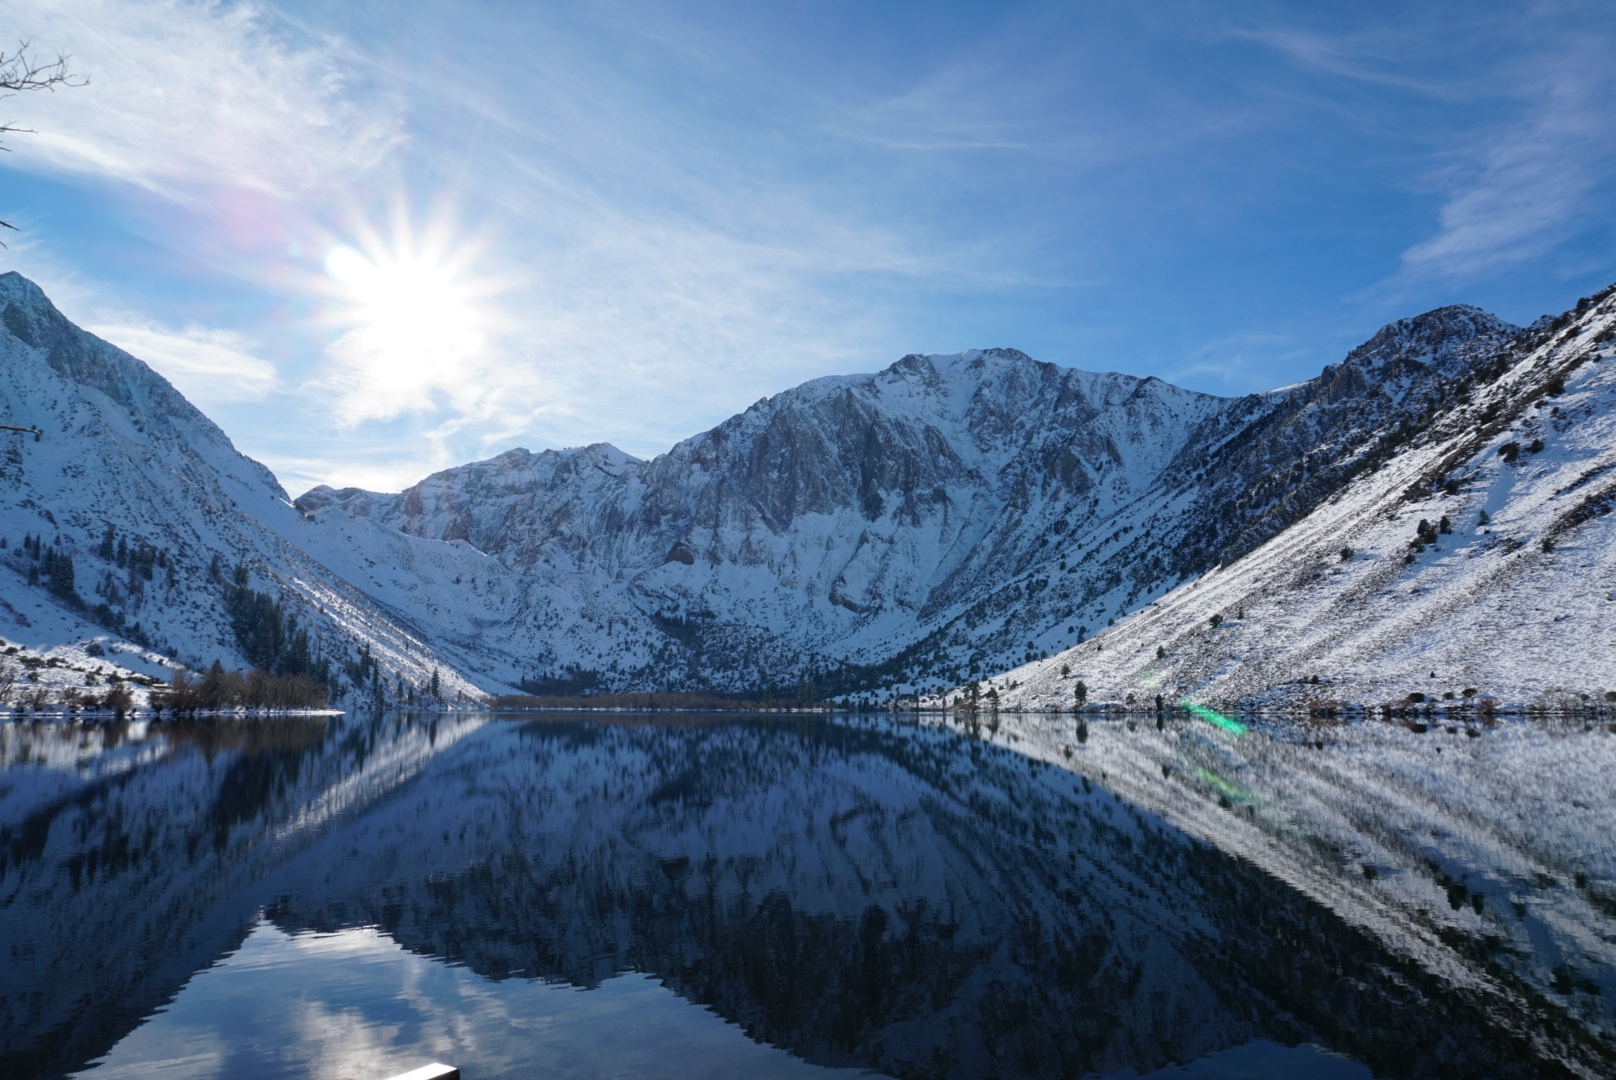 Reflections in Convict Lake